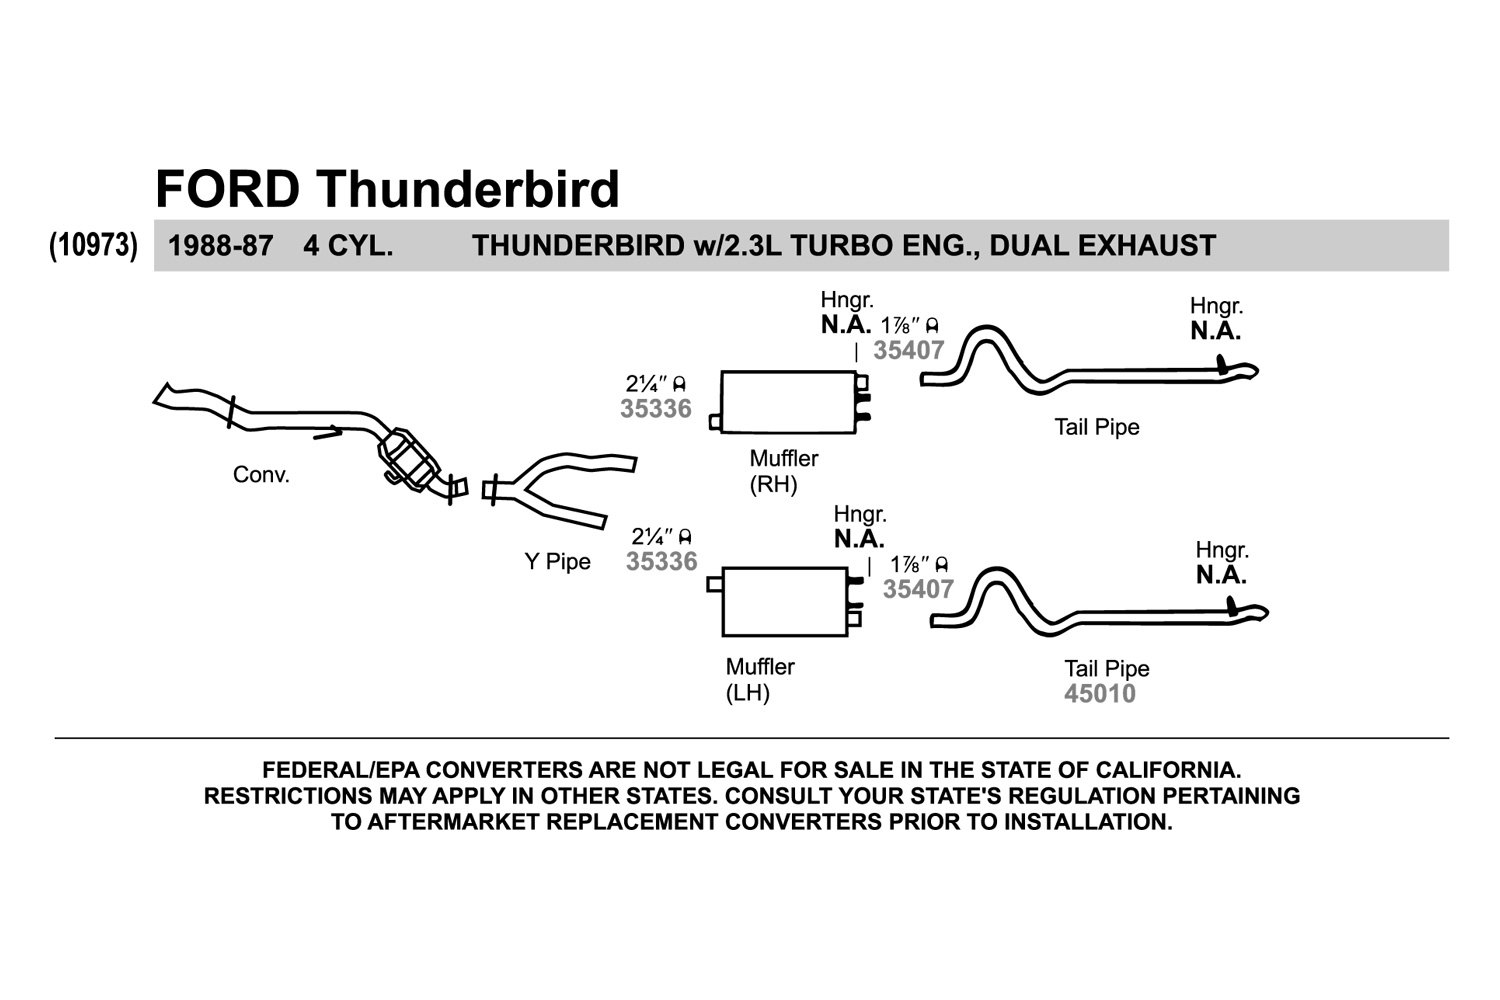 1997 ford thunderbird wiring diagram iphone 4 screw layout 2002  for free